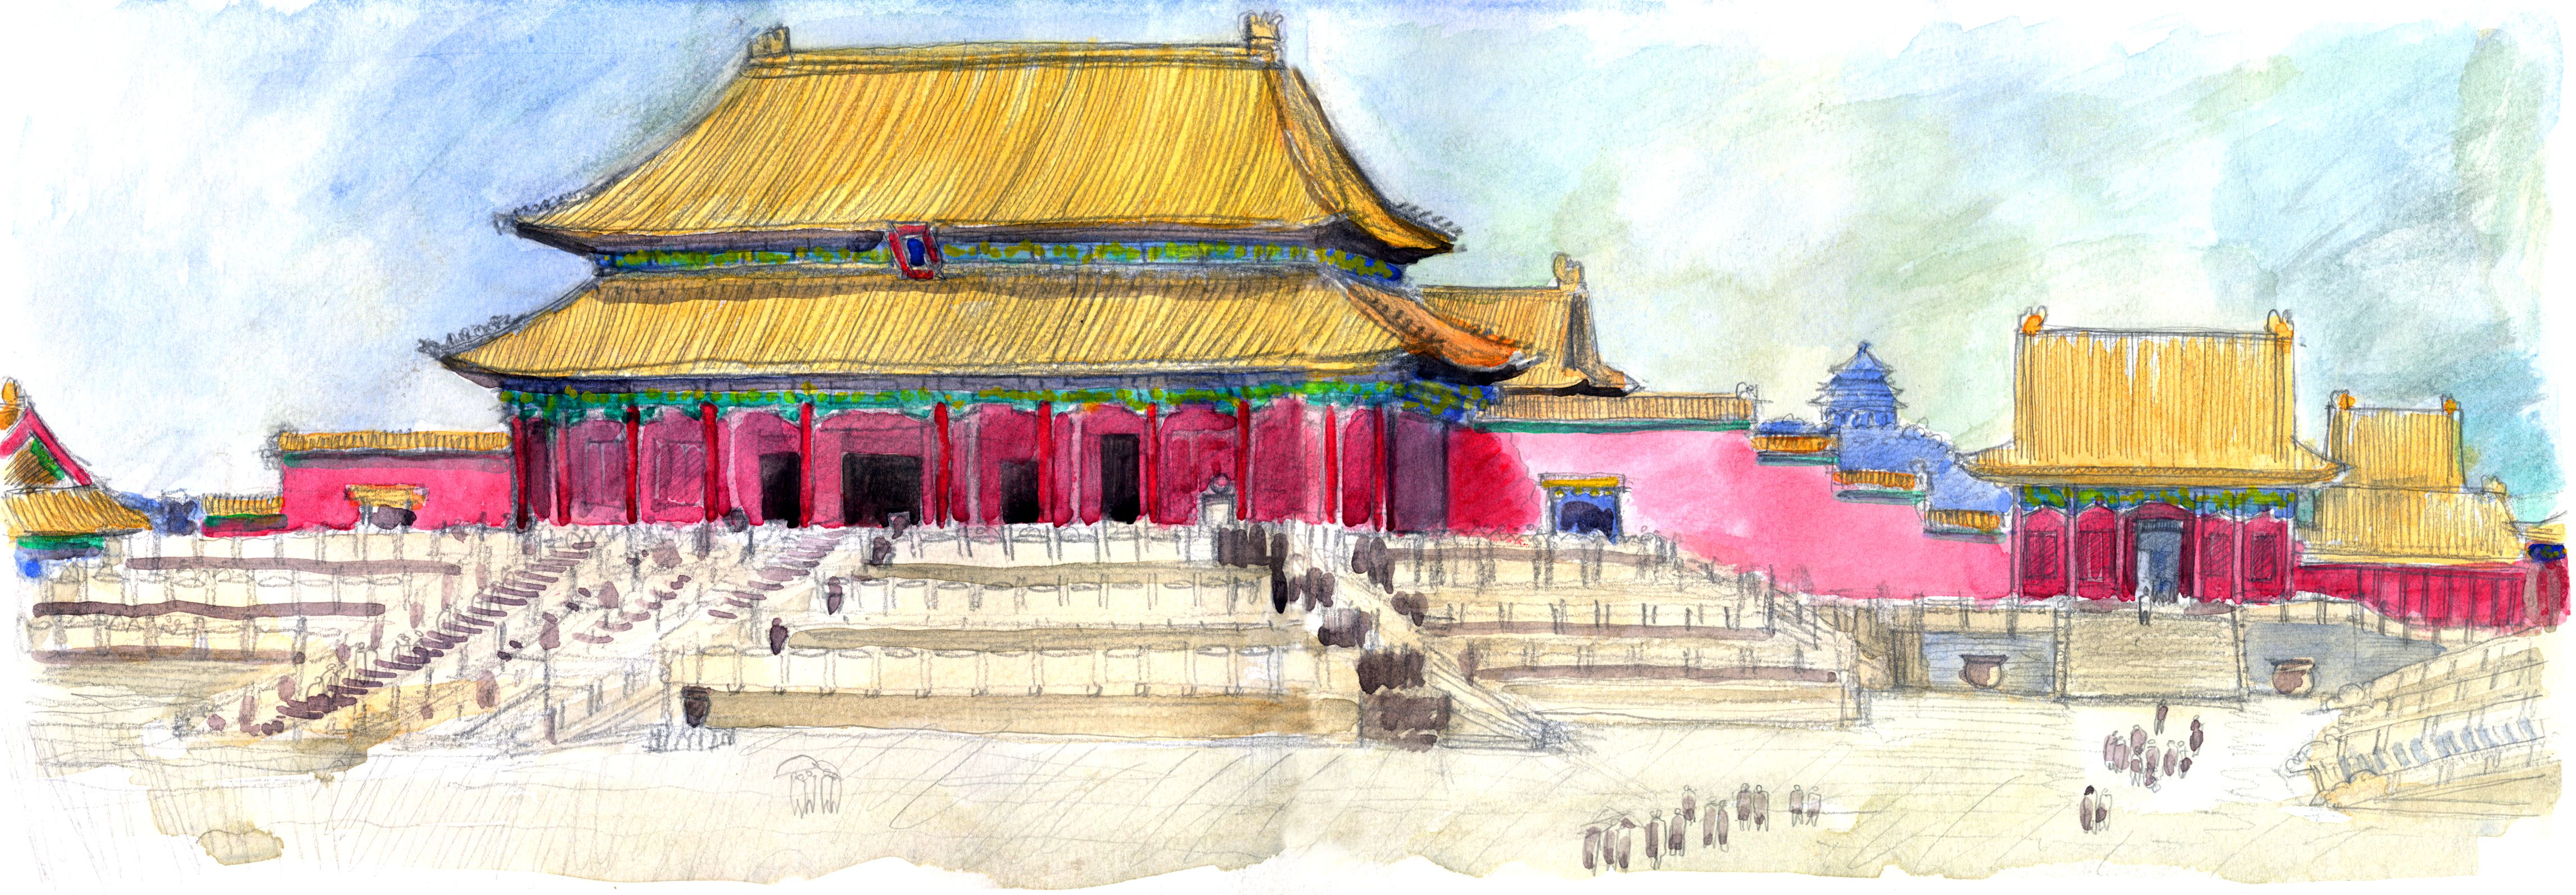 Tai He Dian Forbidden City Beijing China Canvas Painting Diy Chinese Drawings City Drawing